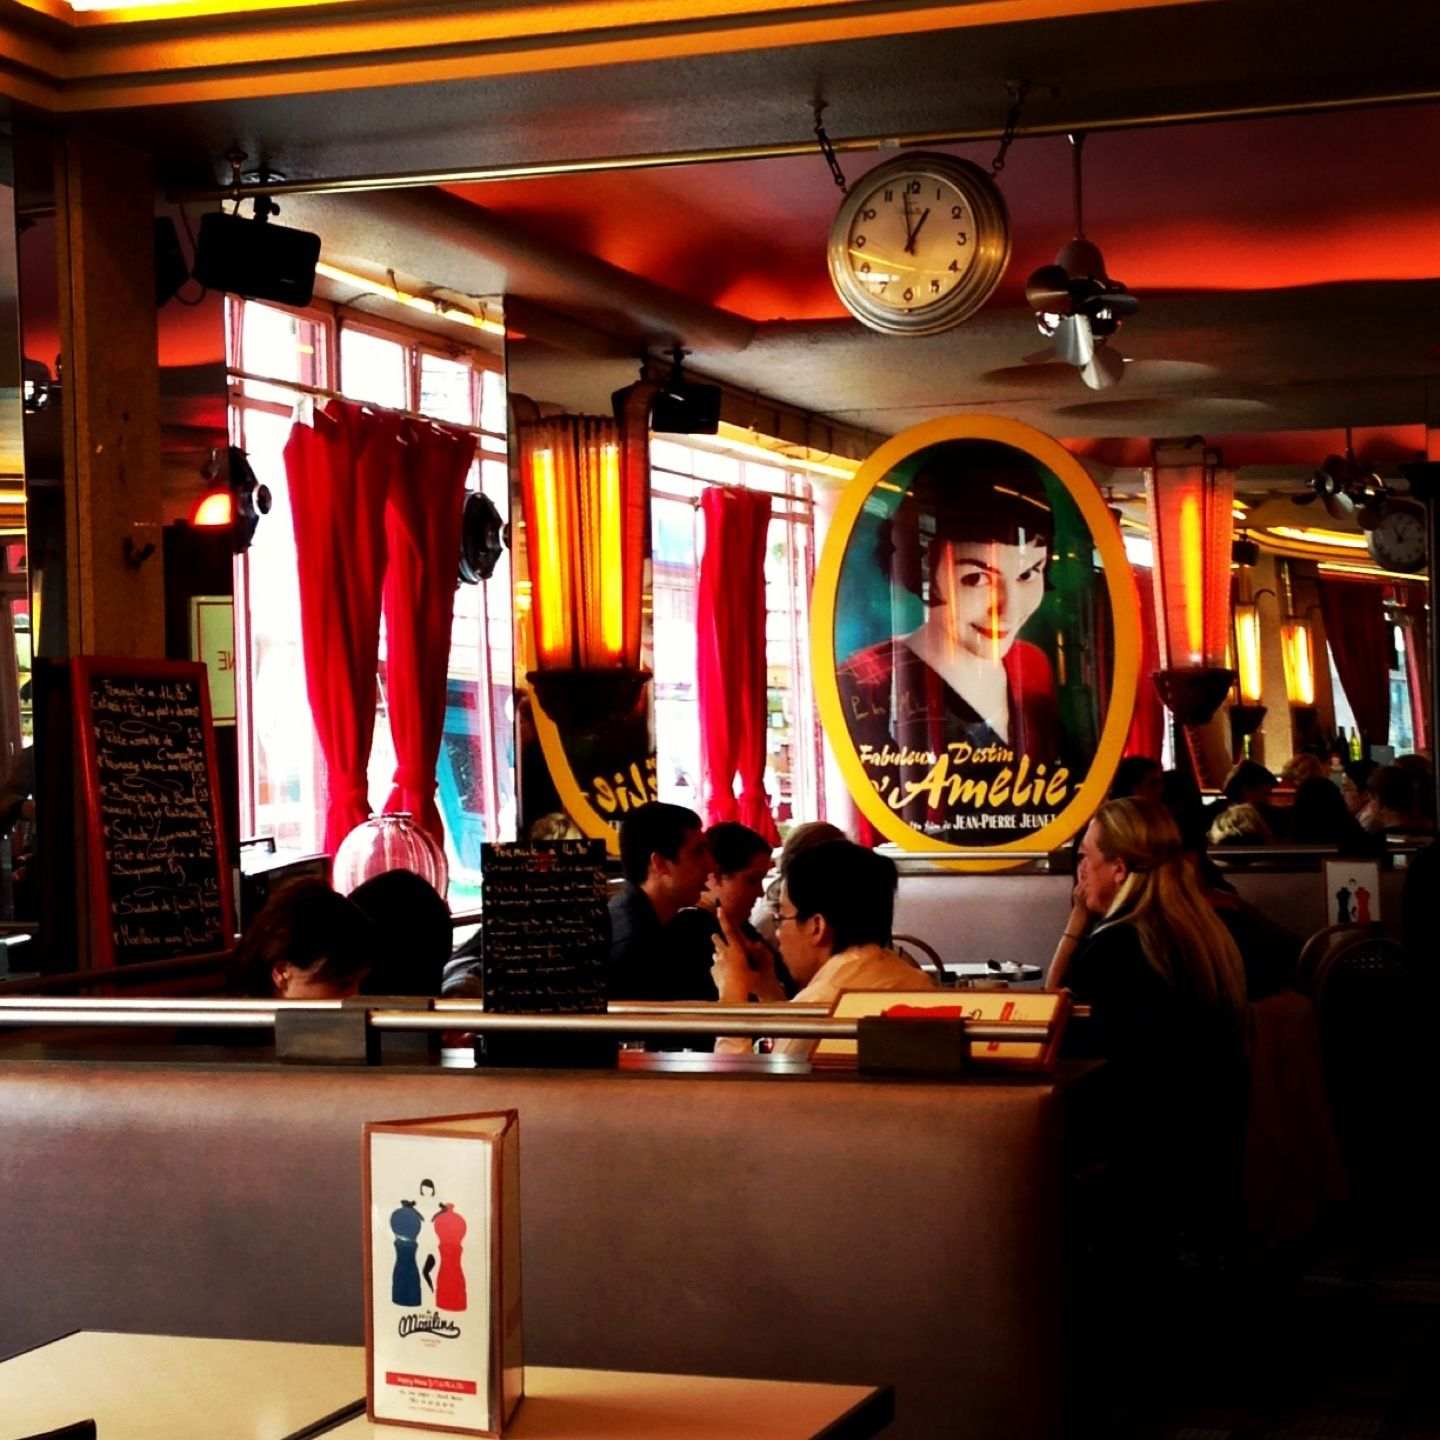 Cafe From The Film Amelie